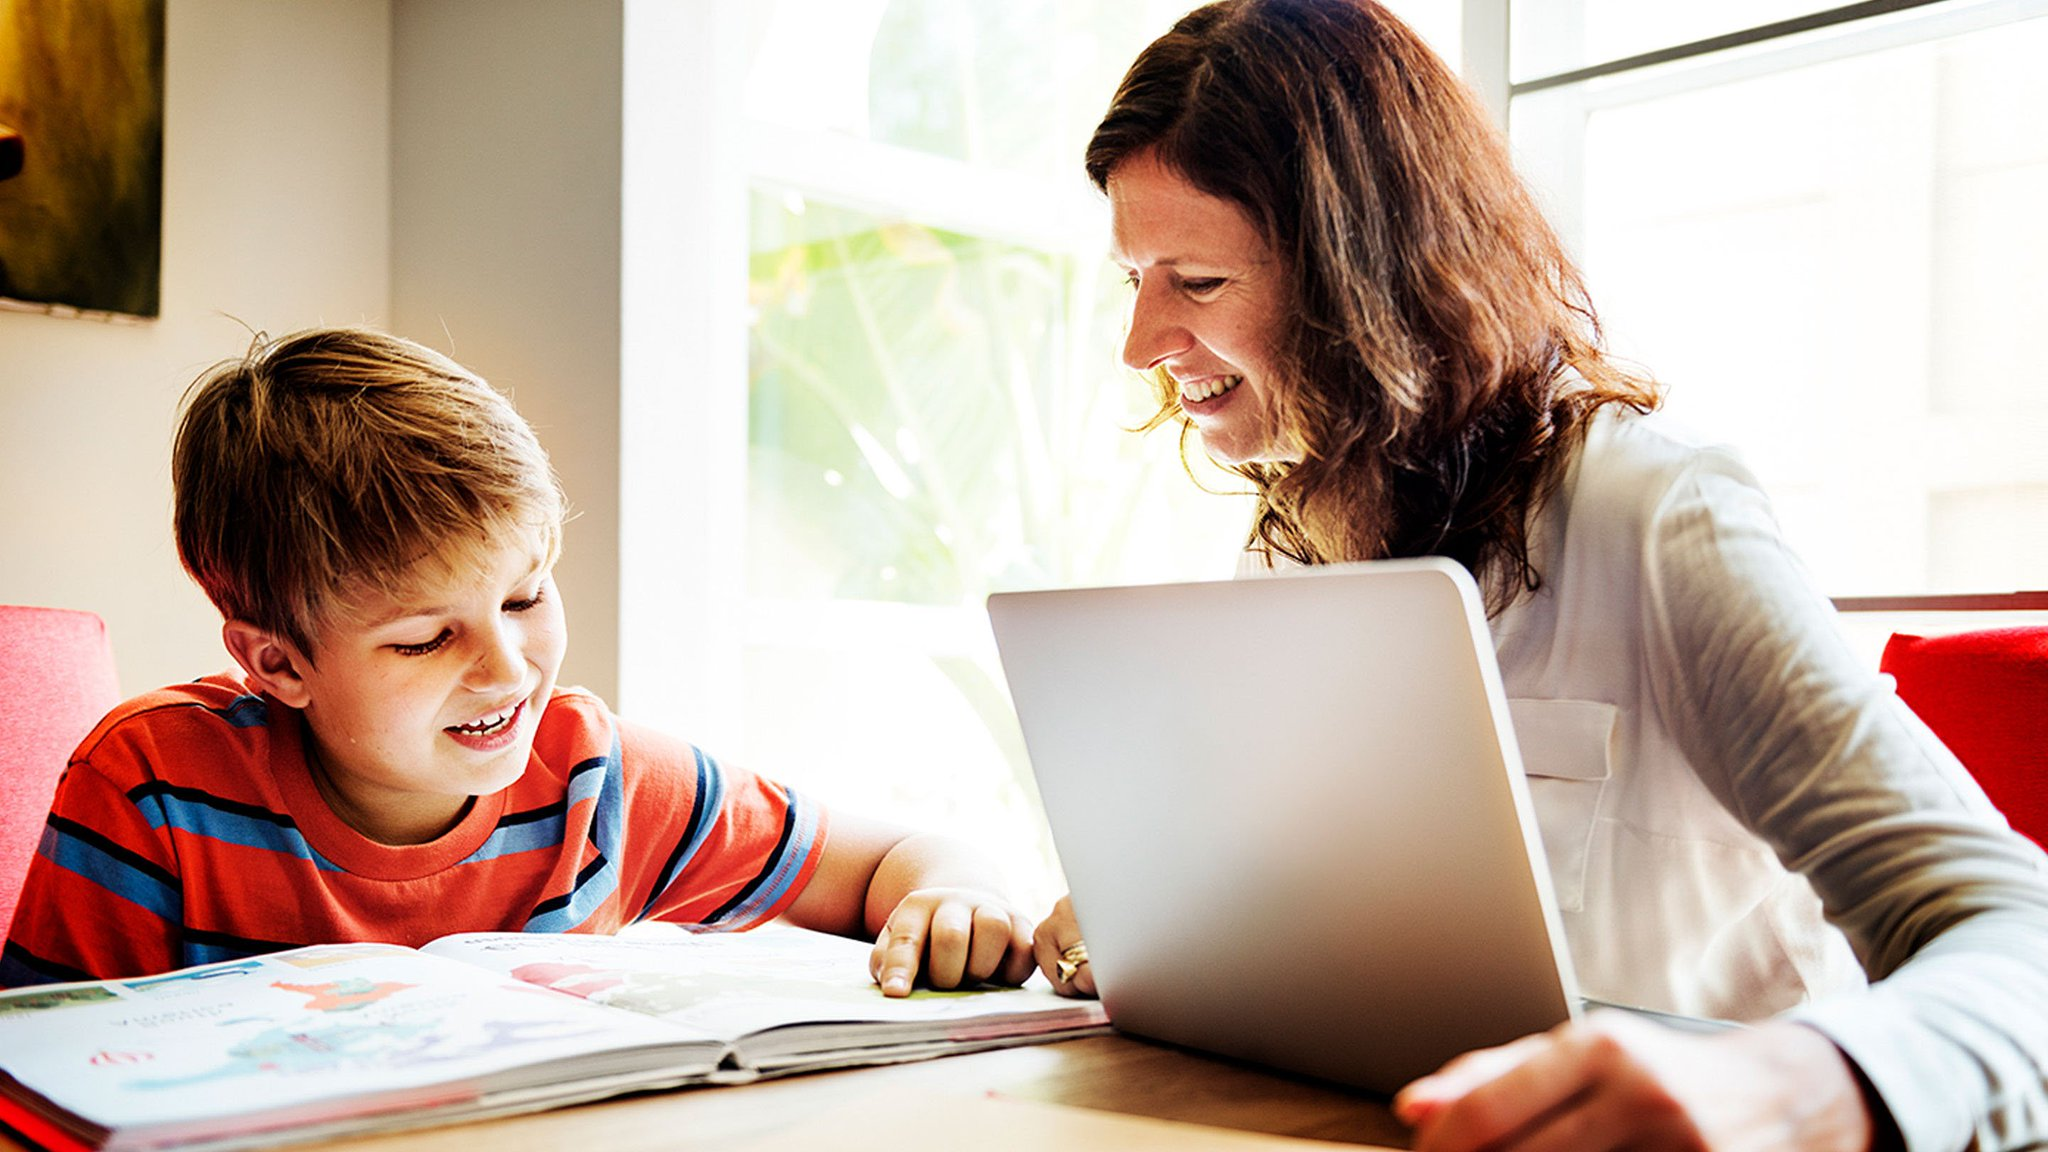 3 tech tips for parent newsletters: https://t.co/fT35C7FXB8. #ptchat https://t.co/V83iYCKUGe